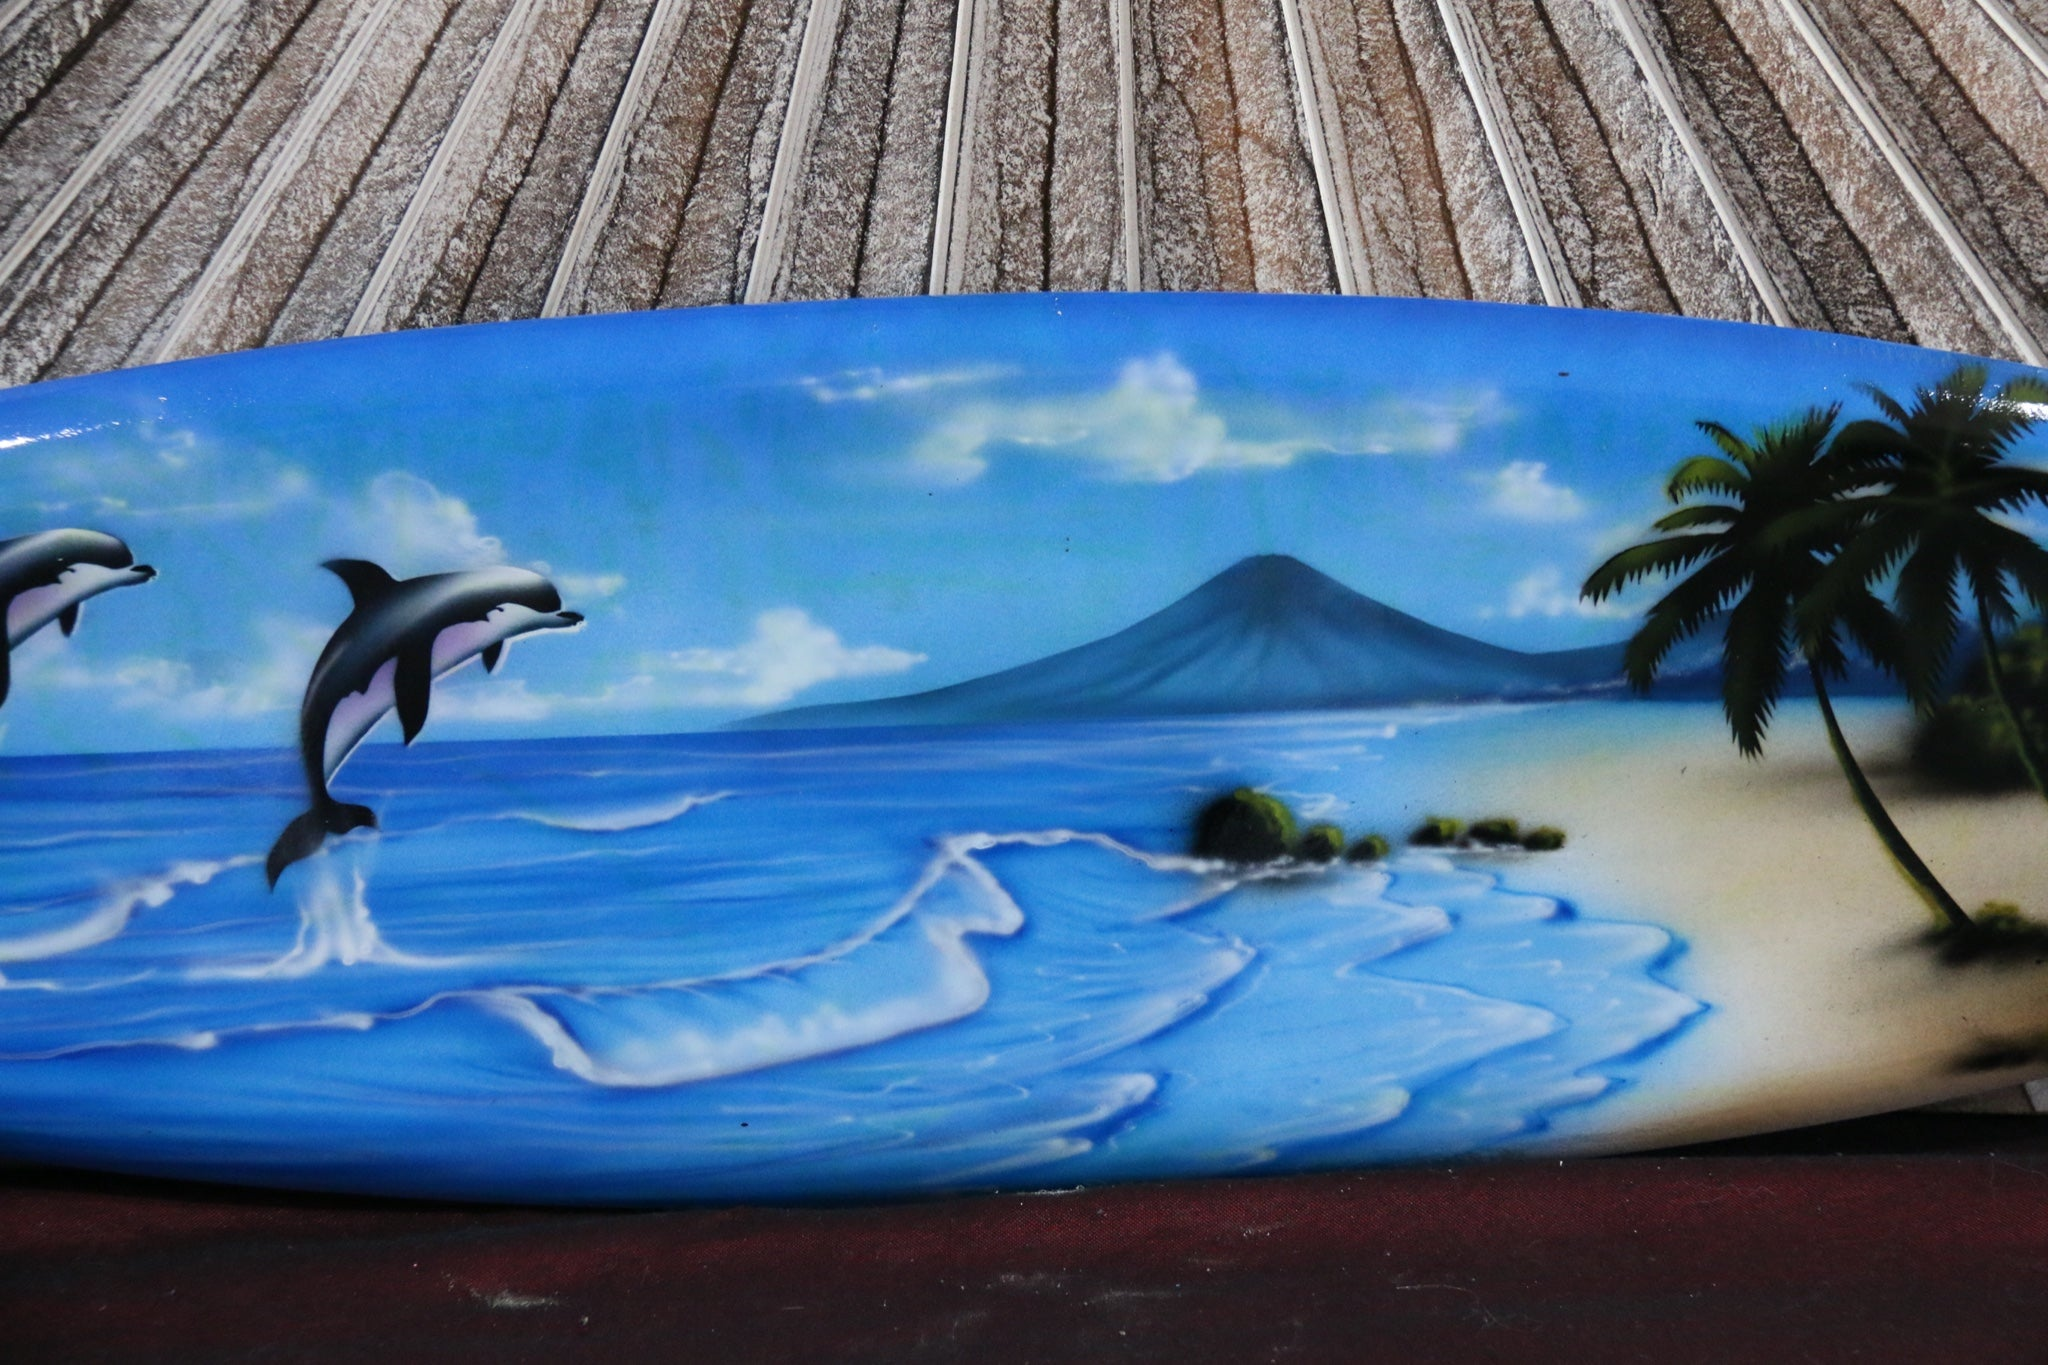 NEW Bali Handmade Air Brushed Surfboard Wall Decor 80cm - Bali Surfboard Art